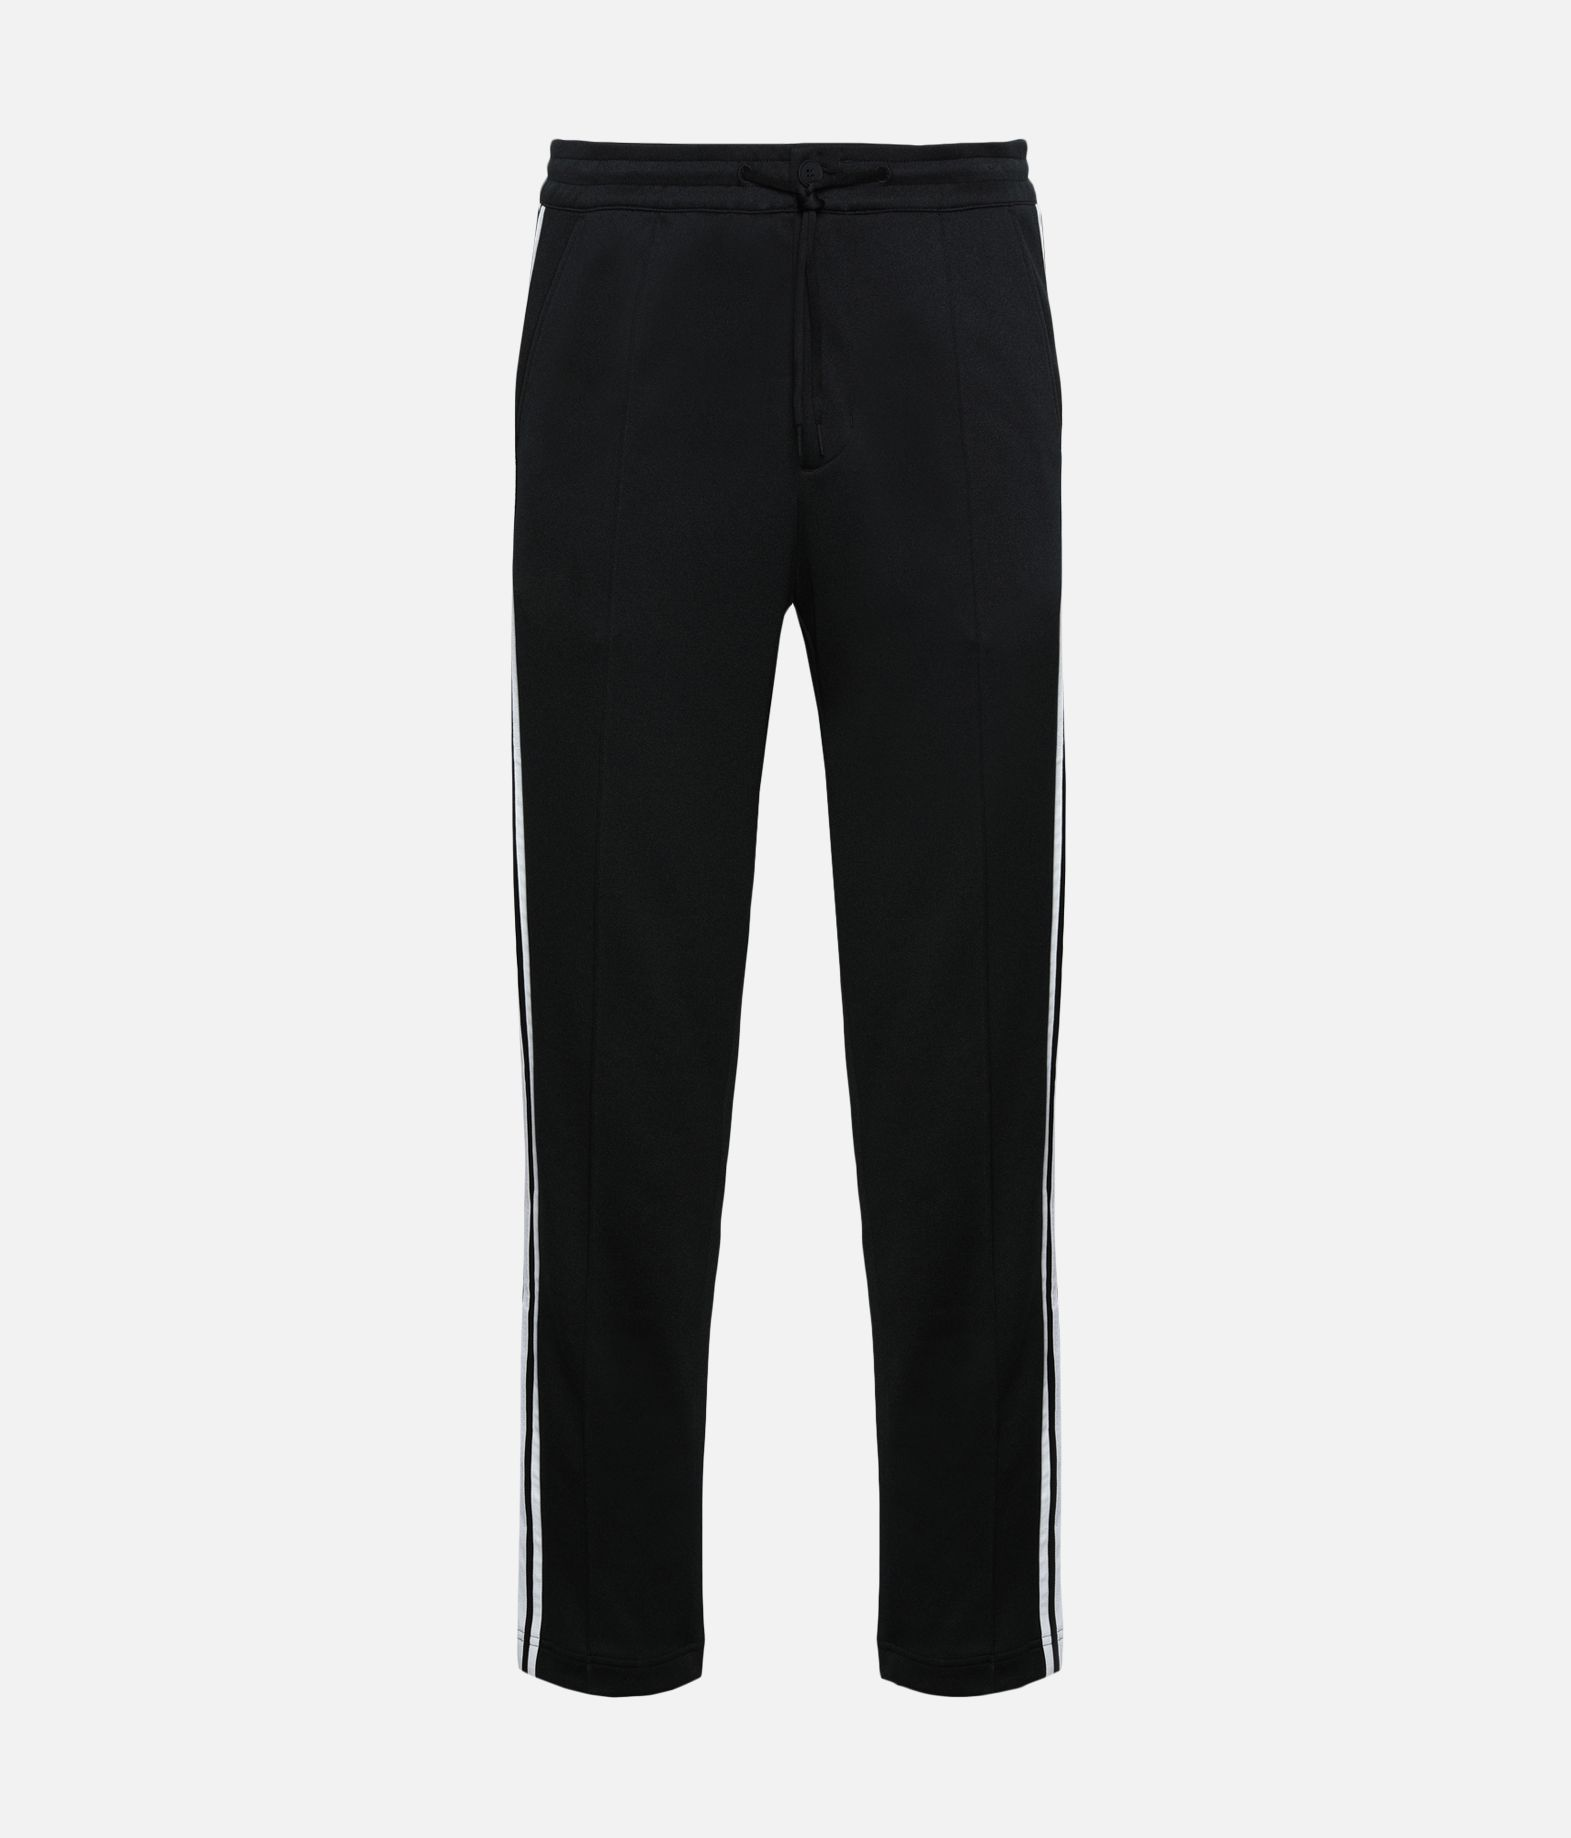 Y-3 Y-3 3-Stripes Track Pants Tracksuit pants Man f